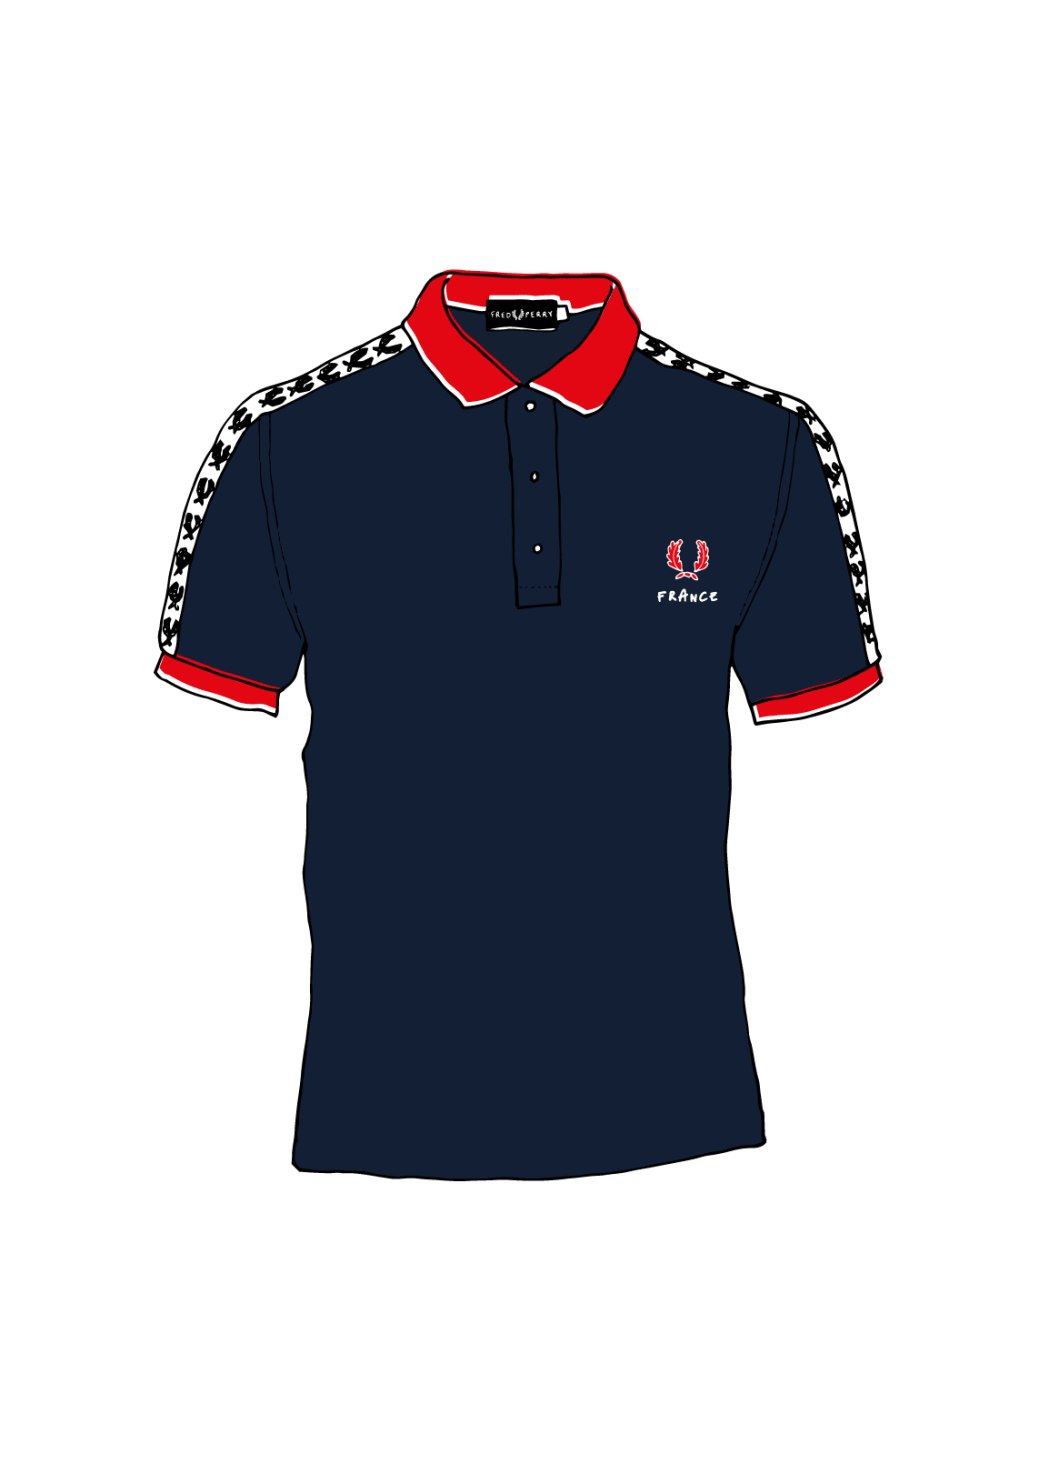 https://i1.wp.com/blog.woodhouseclothing.com/wp-content/uploads/2016/04/Fred-Perry-Country-Shirts-France.png?w=1050&ssl=1